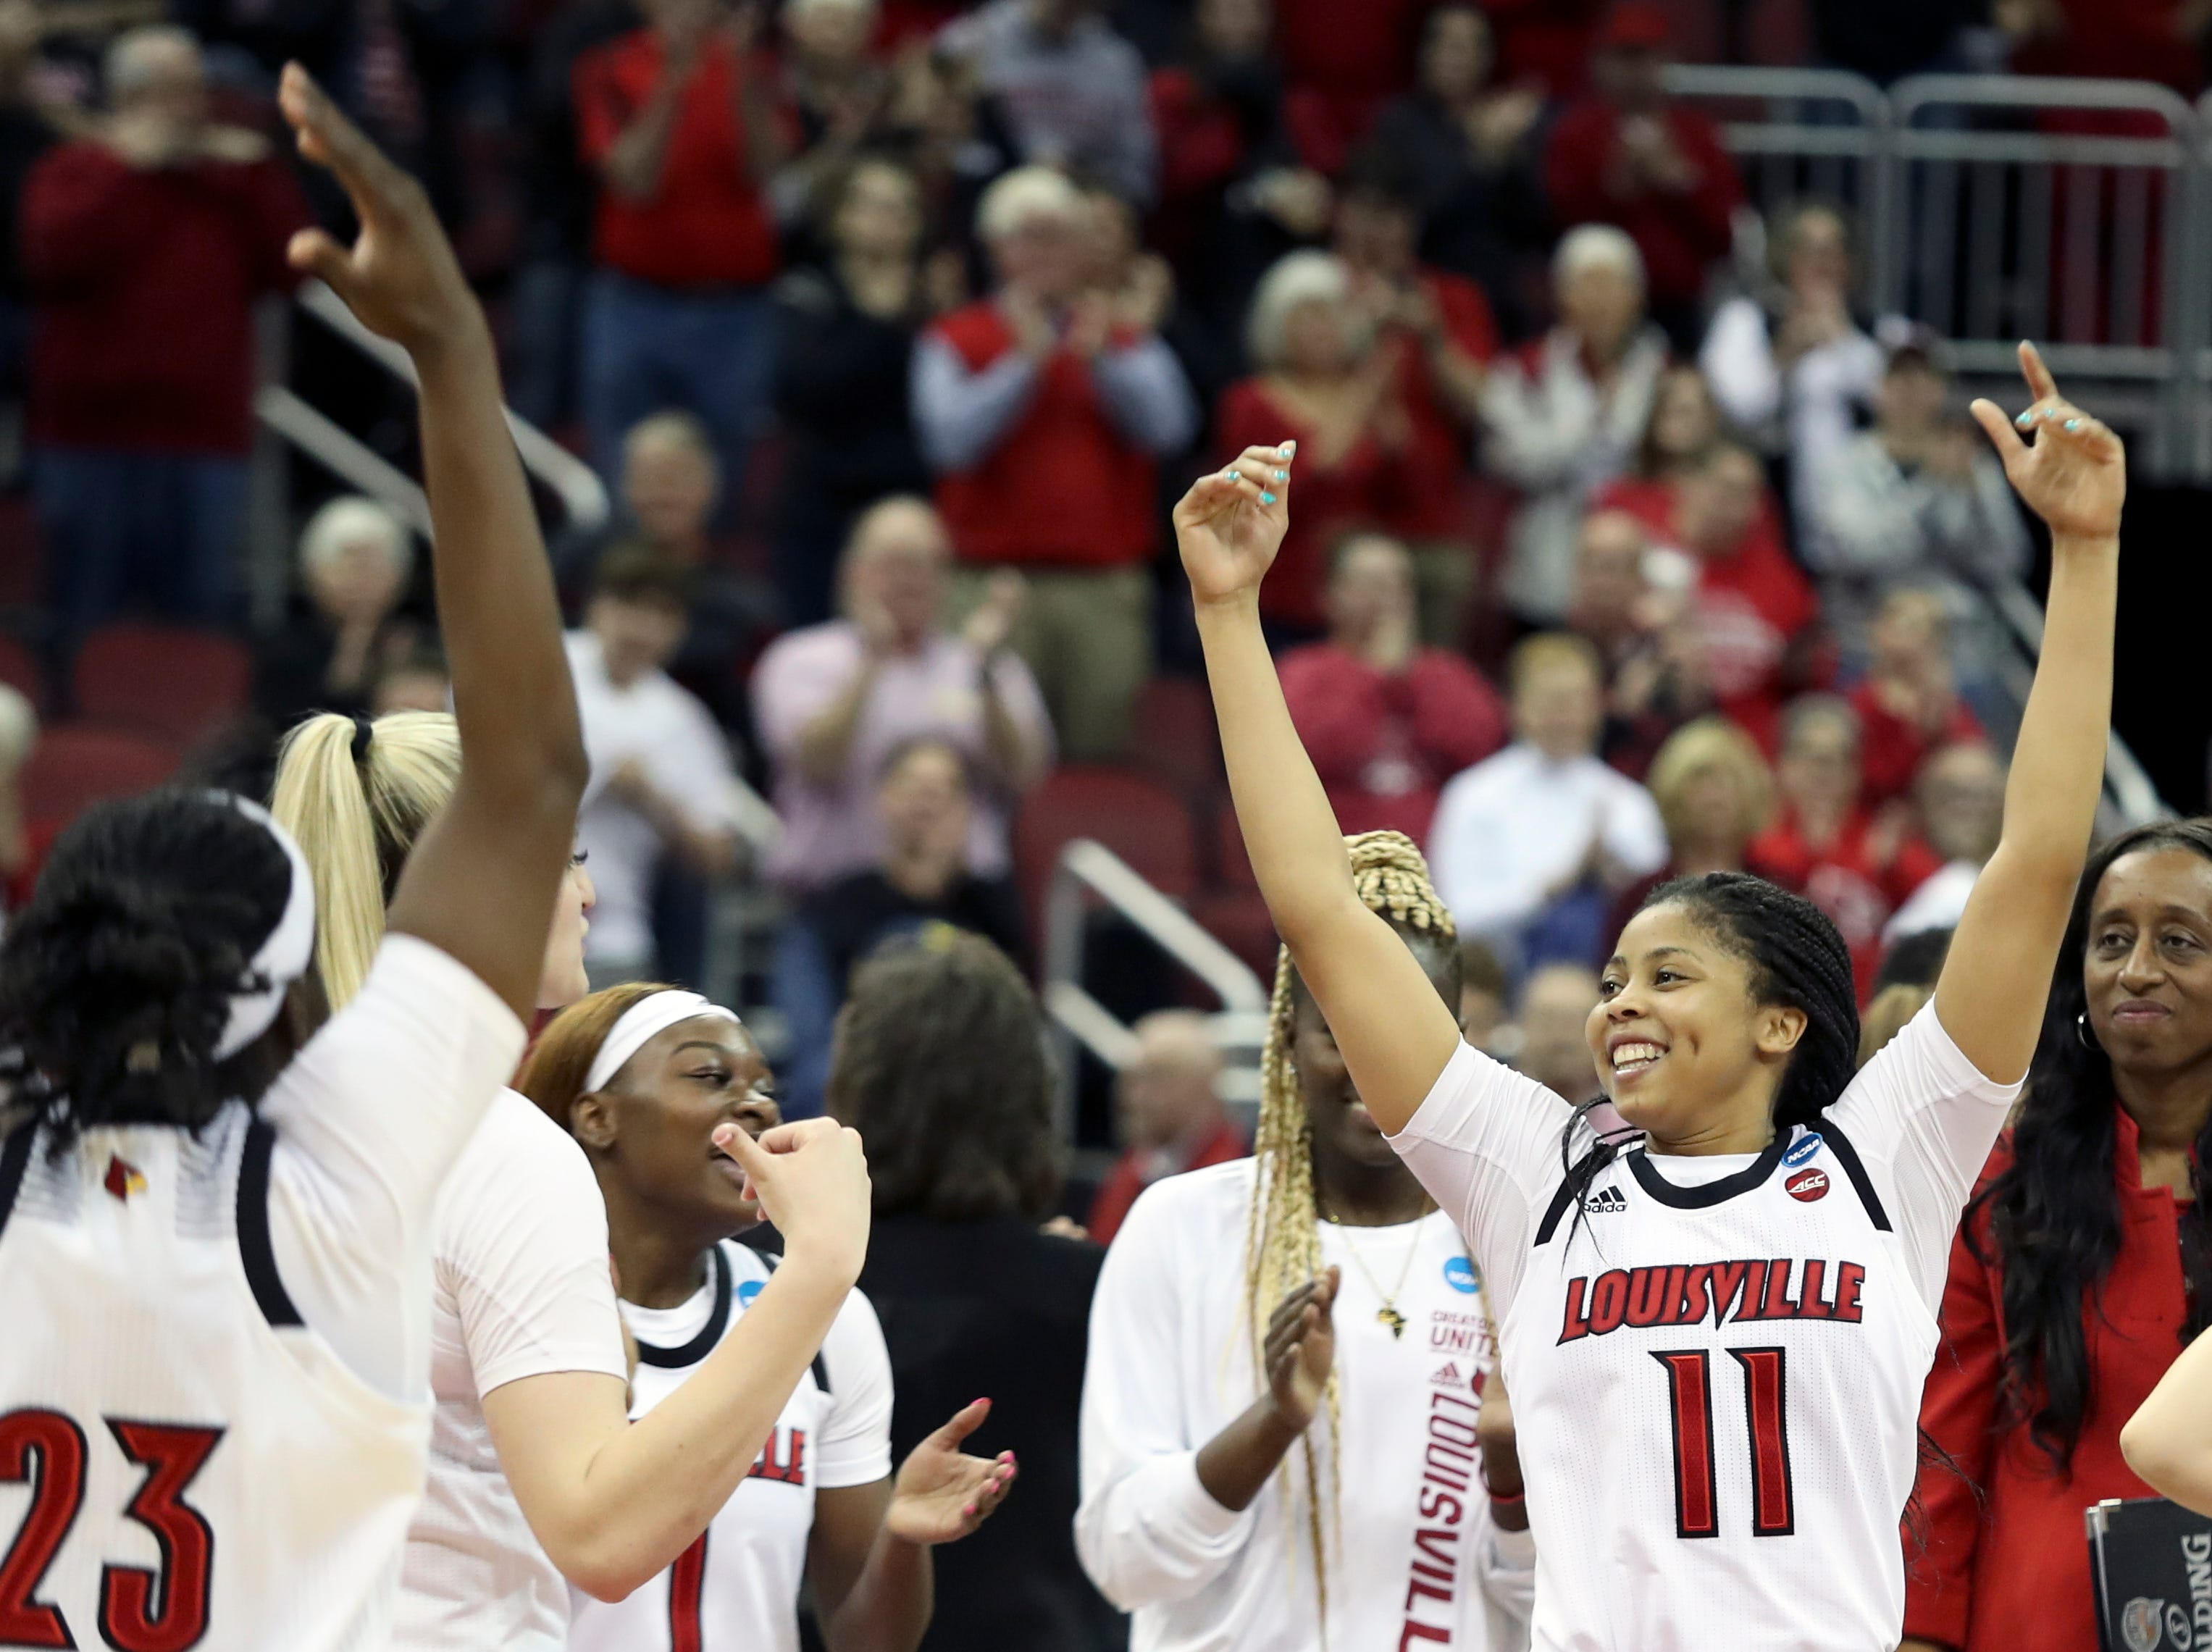 Louisville's Arica Carter celebrates with her team after the Cardinals punch their ticket to the Sweet 16 by beating Michigan at the KFC Yum Center on March 24.